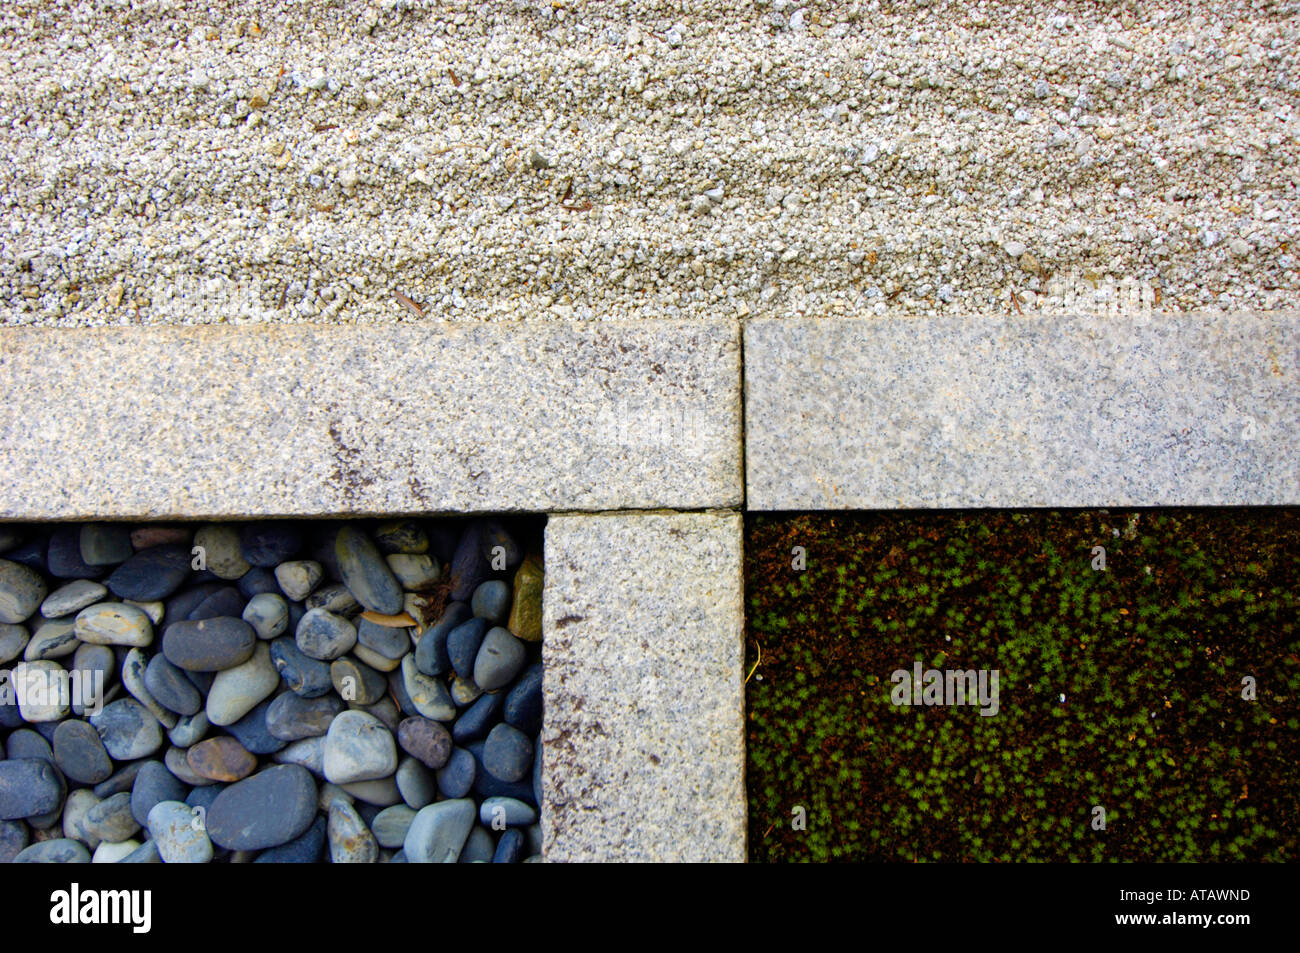 Junction of stone sand and moss in a rock garden at Ryogen In Zen Temple at the Daitoku ji Temple complex Kyoto Japan - Stock Image